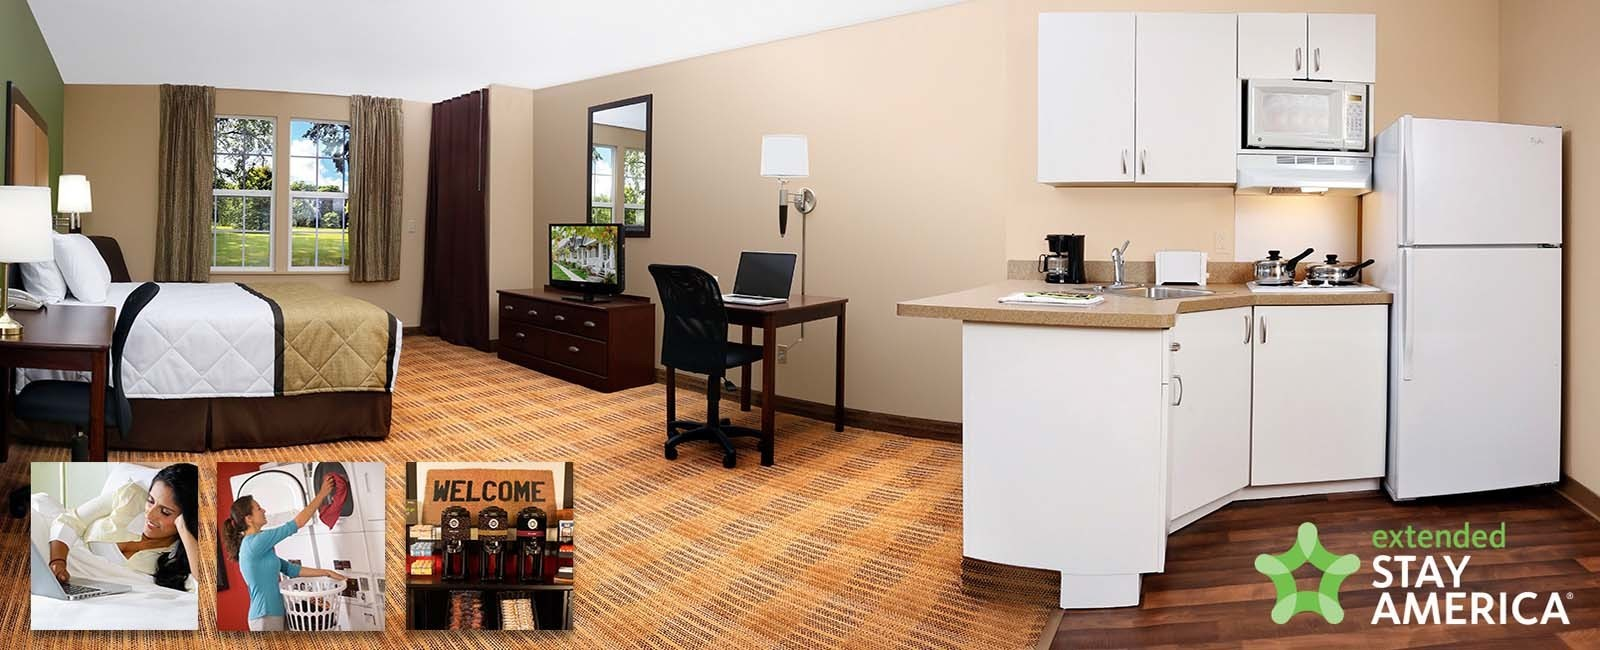 Extended Stay America - West Valley City